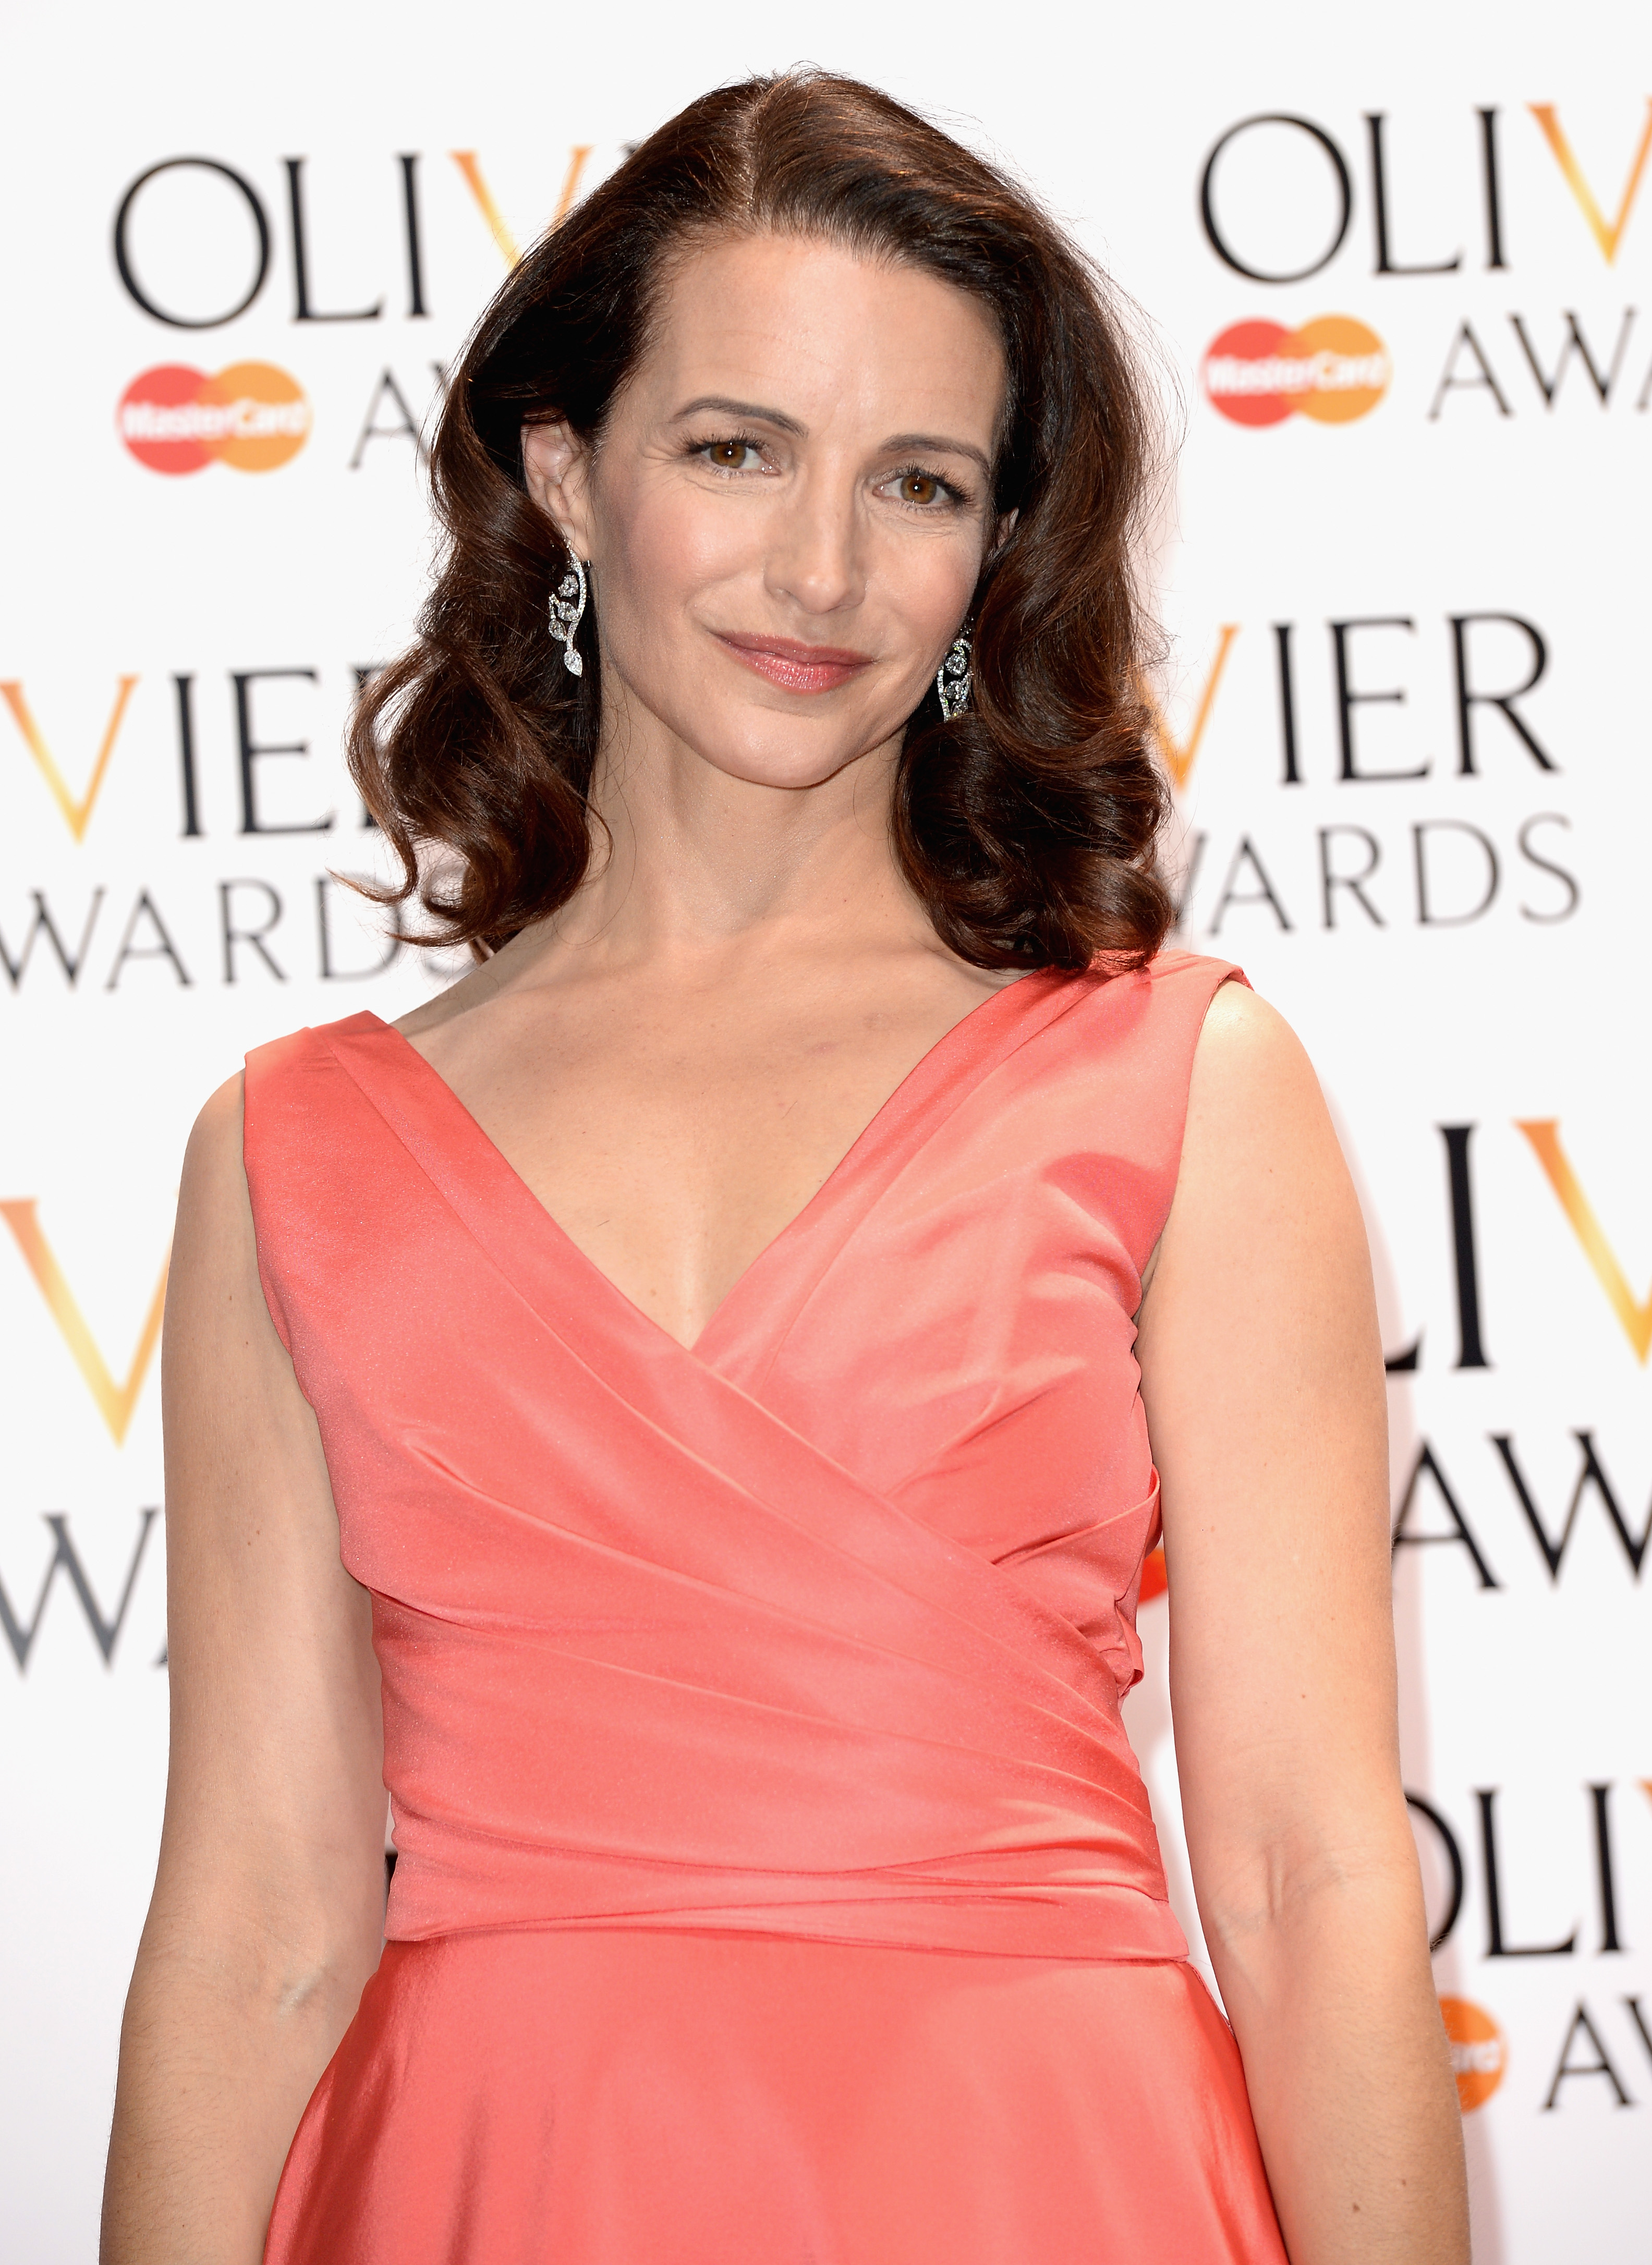 Kristin Davis' Grandmother Has Died at Age 107 - Closer Weekly